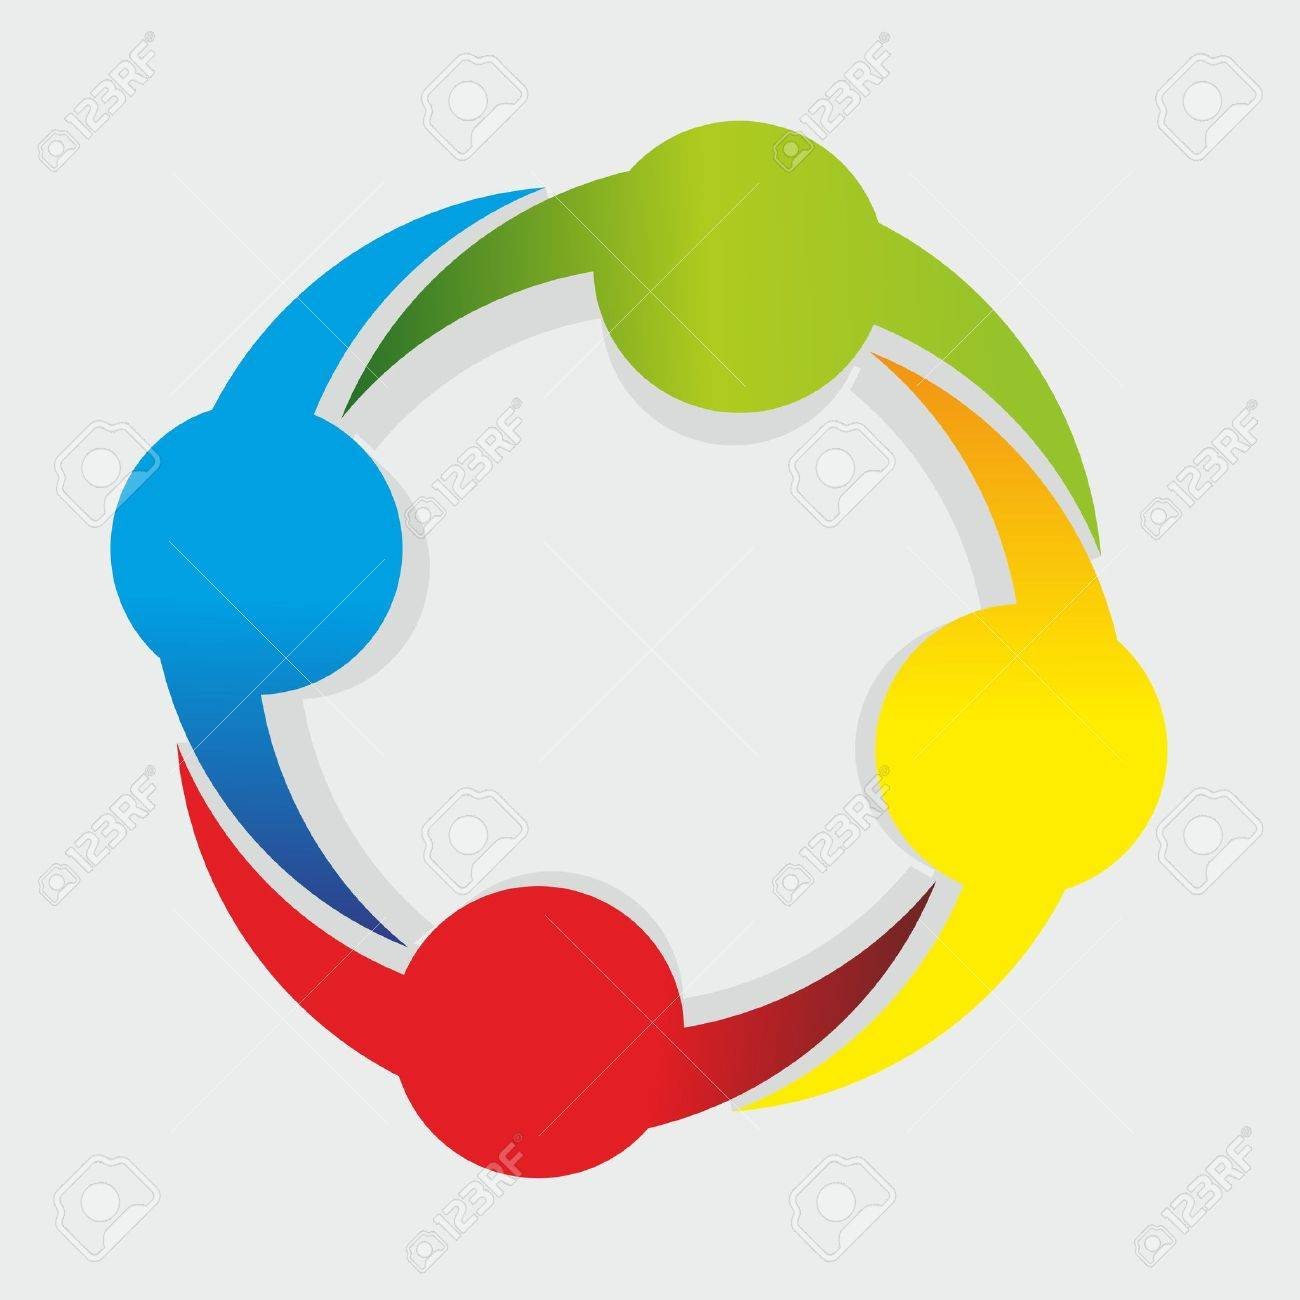 abstract form as symbol for teamwork and diversity royalty free